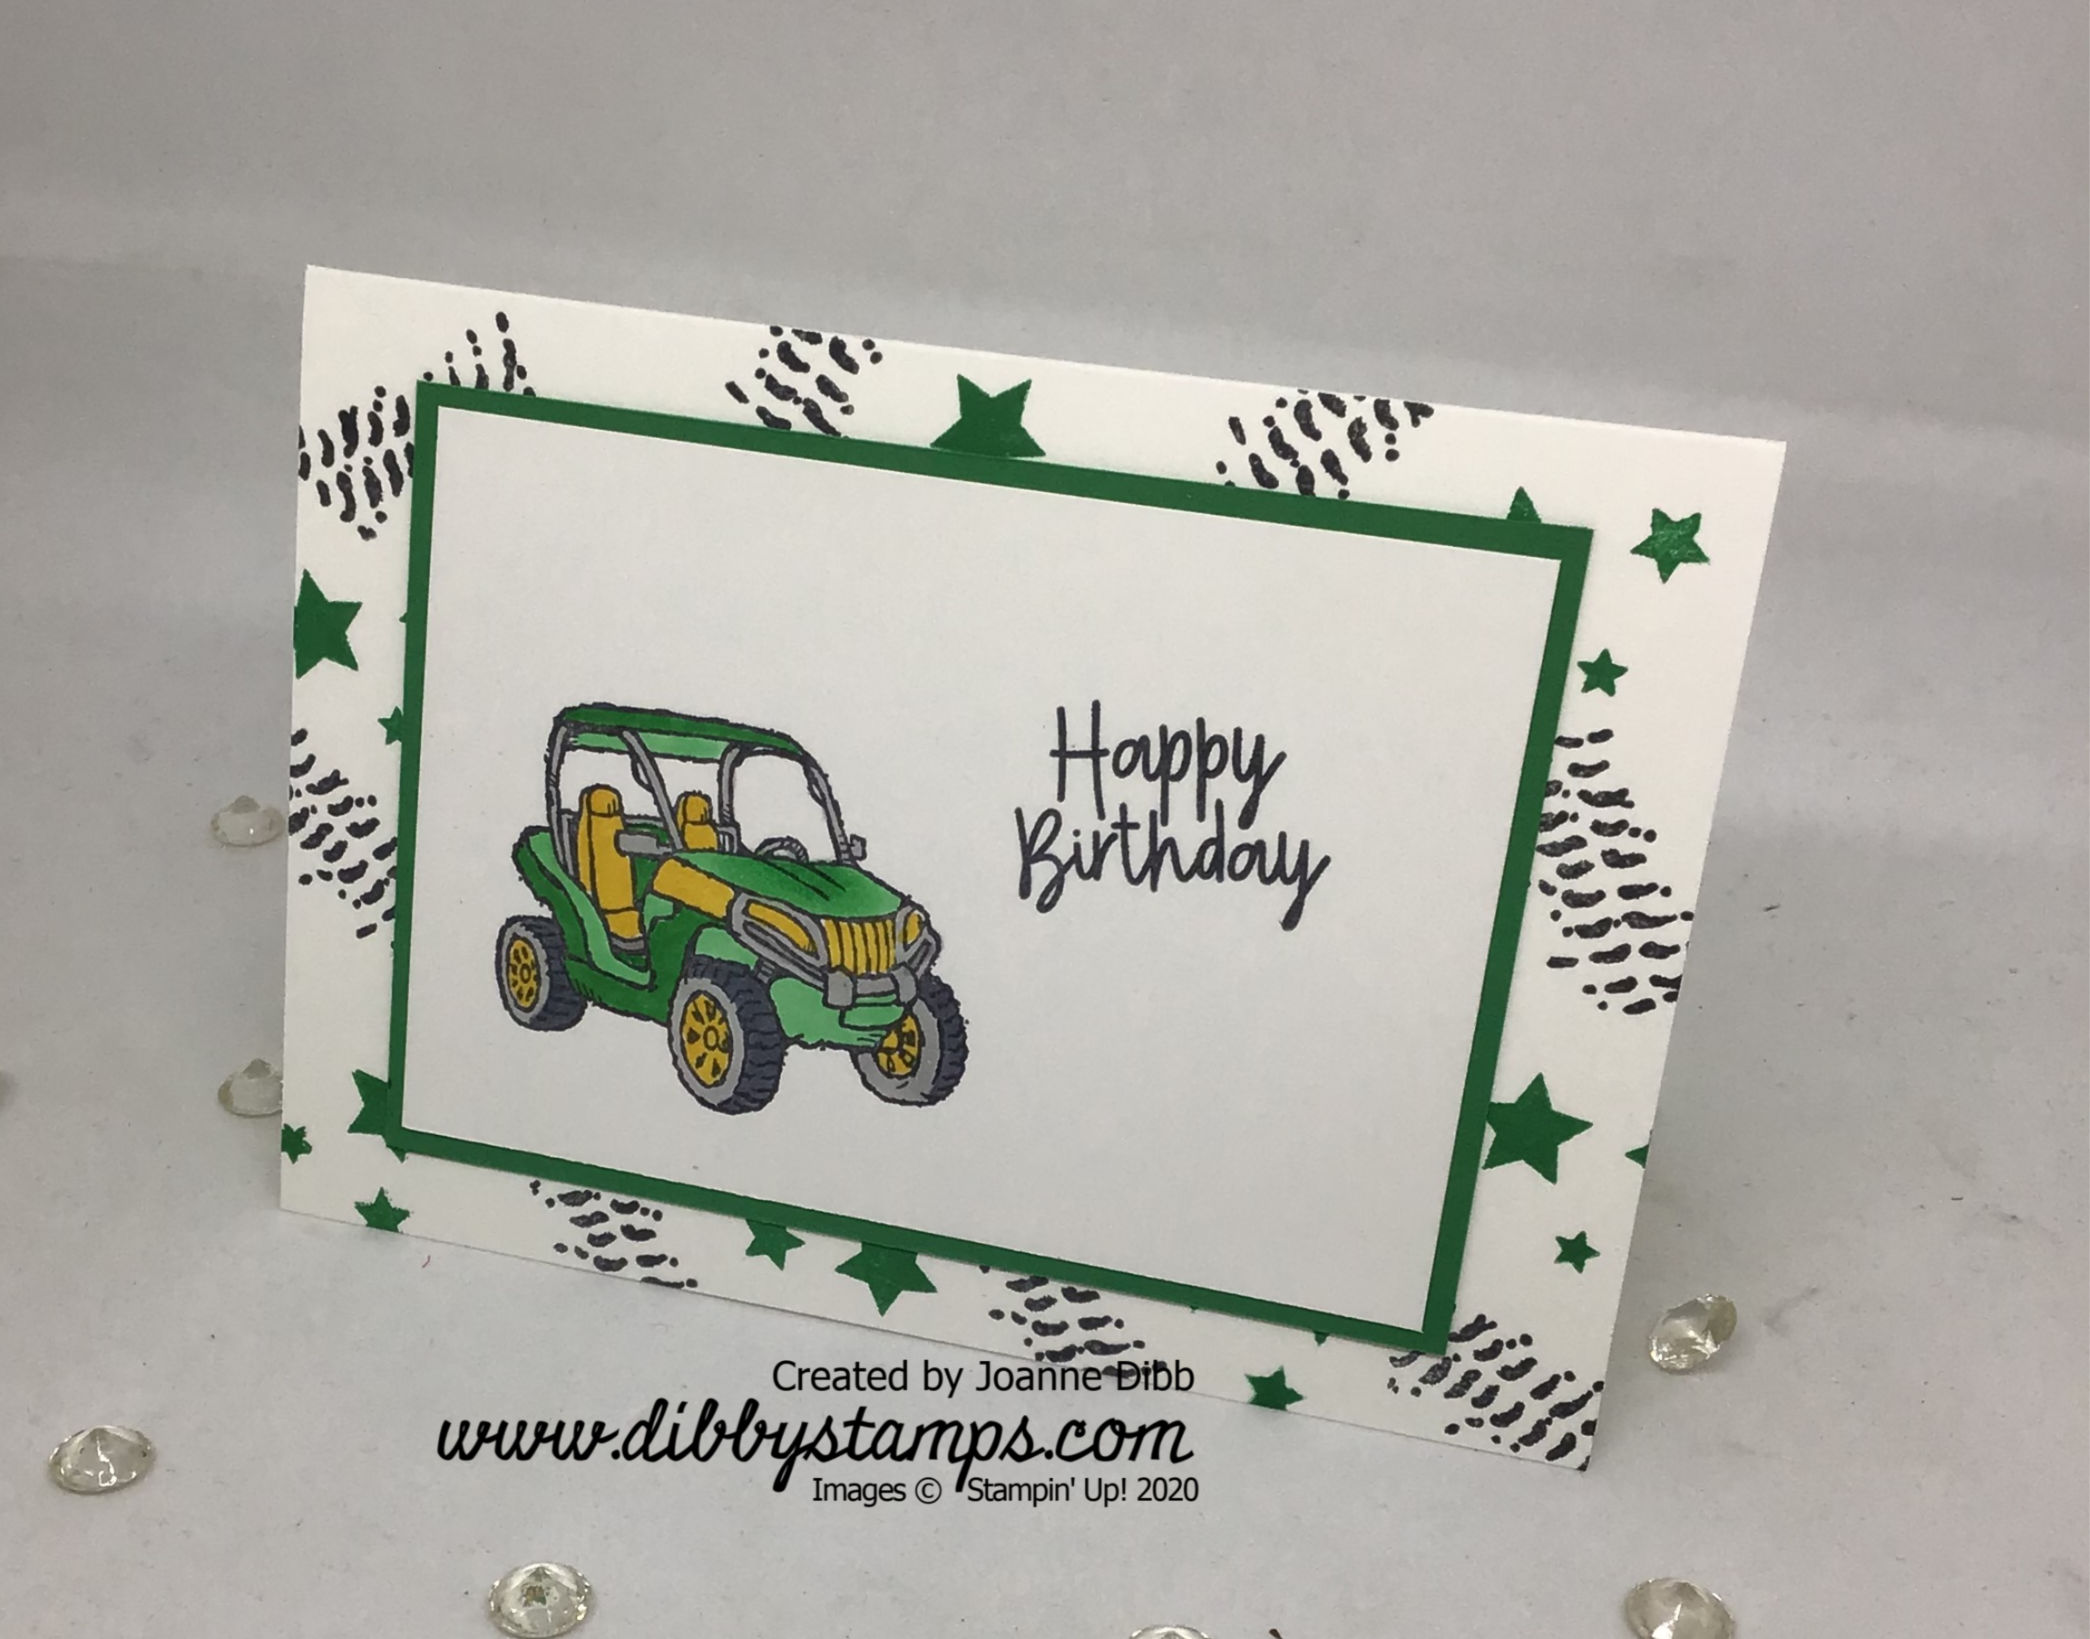 Gator Birthday Card